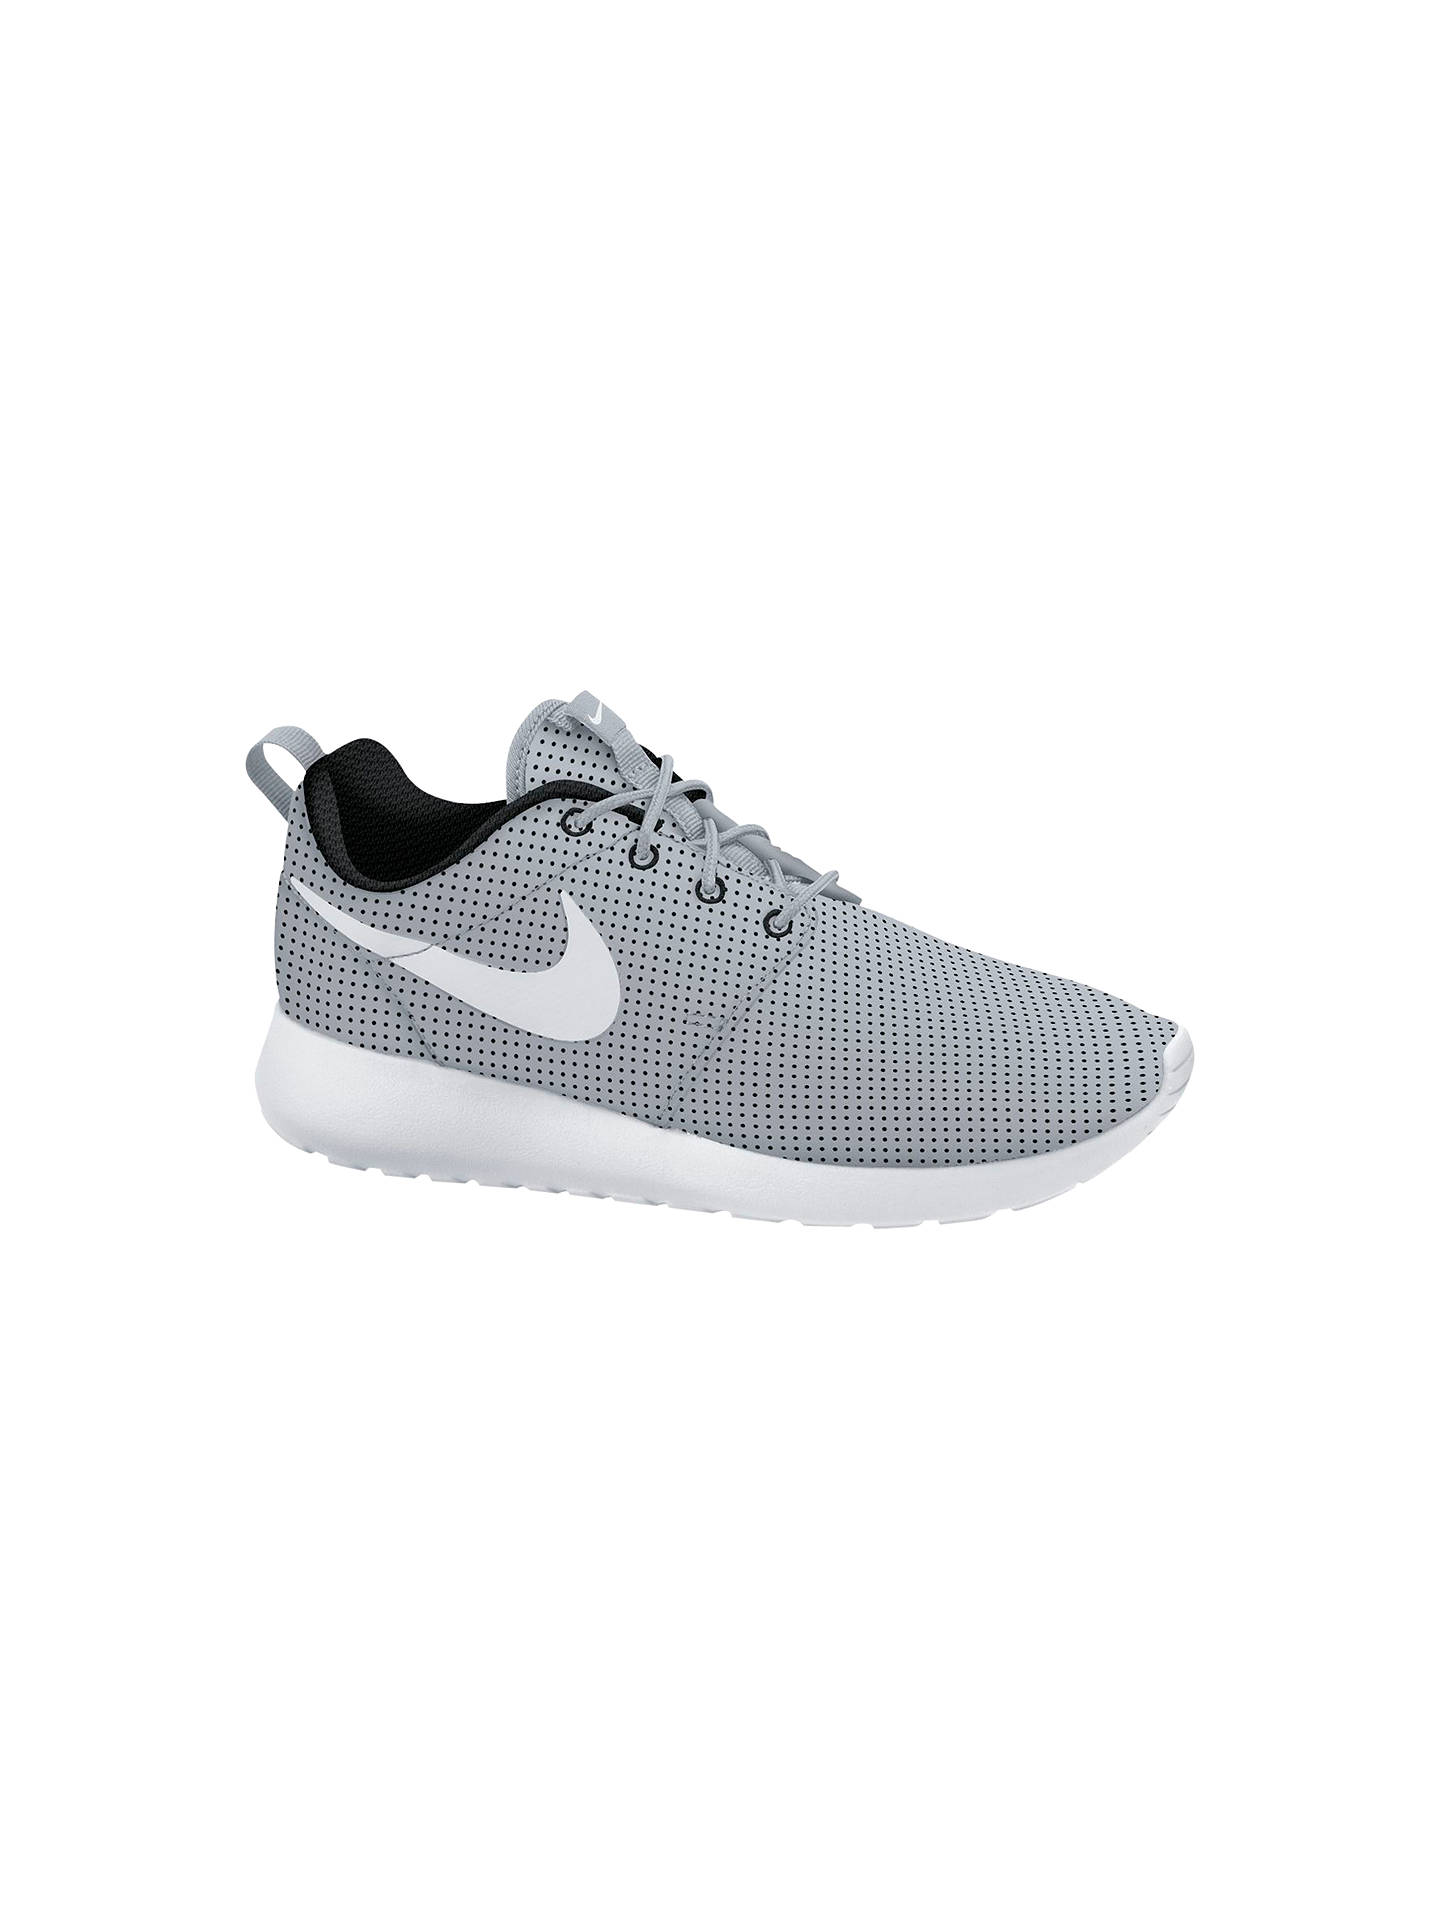 760a47cc1 Buy Nike Roshe Run Women s Trainers